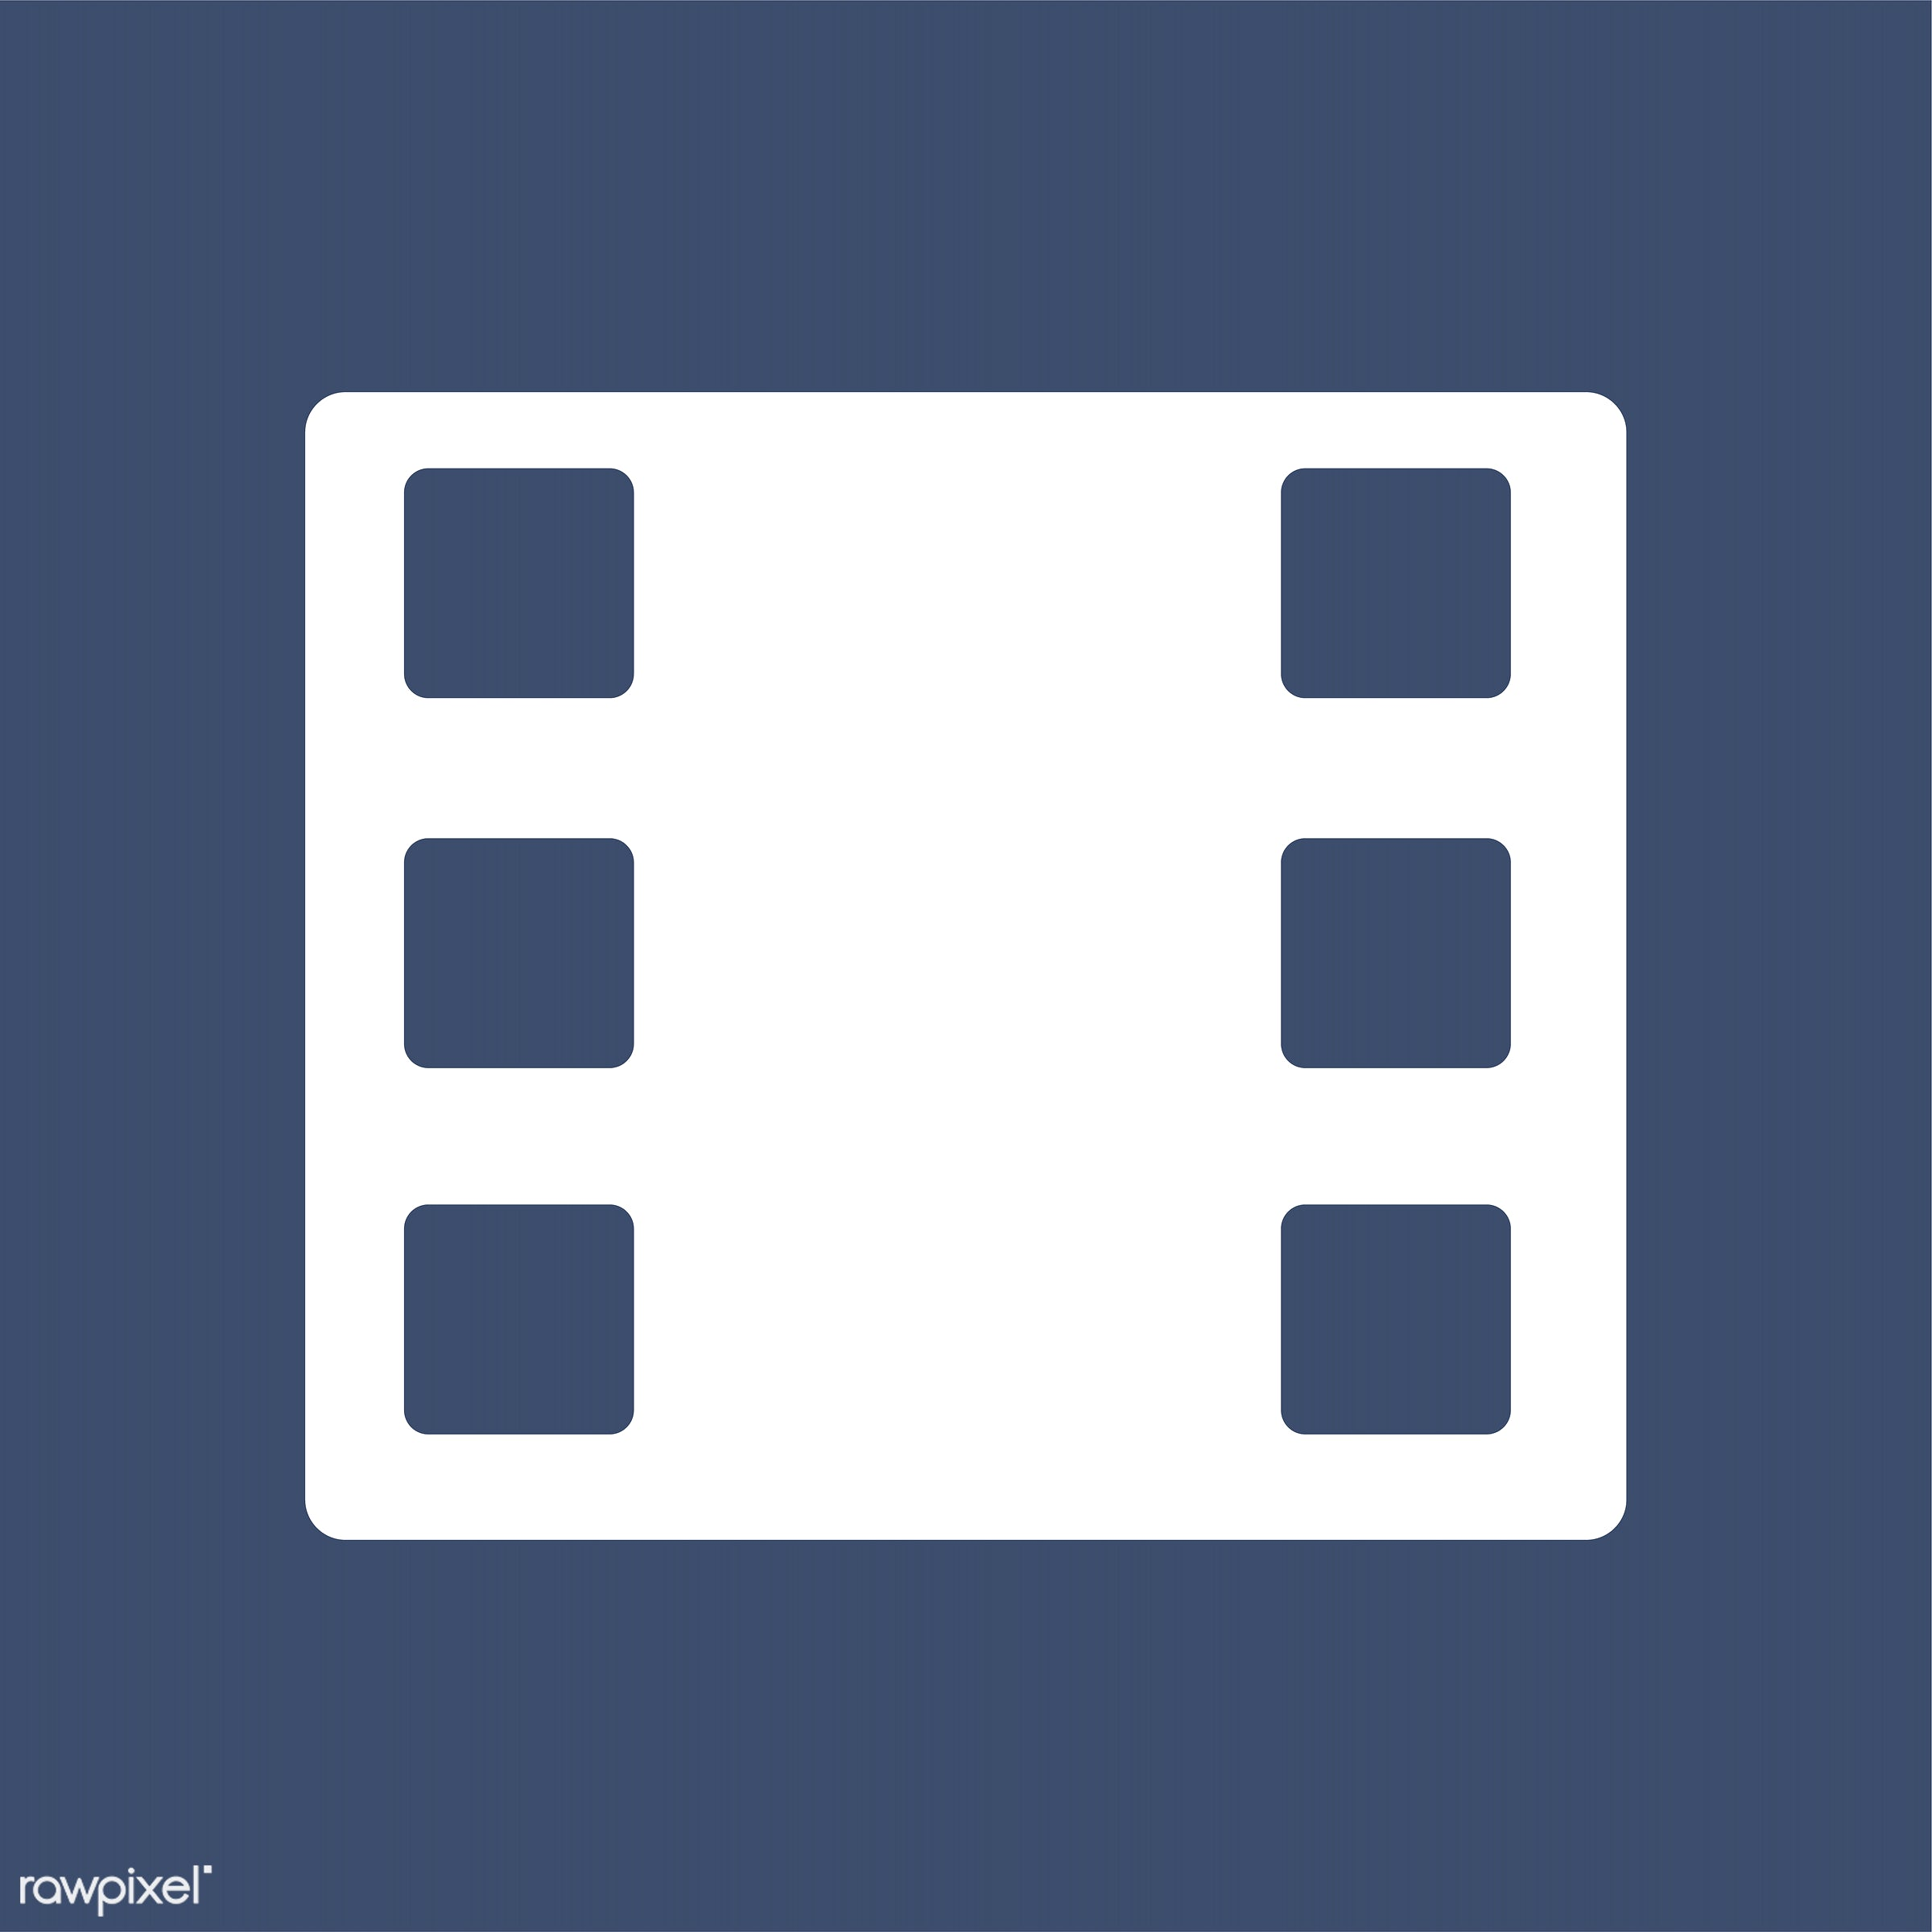 Classical filmstrip on isolated background - 35mm, art, blank, blue, blue background, camera, cinema, cinematography,...